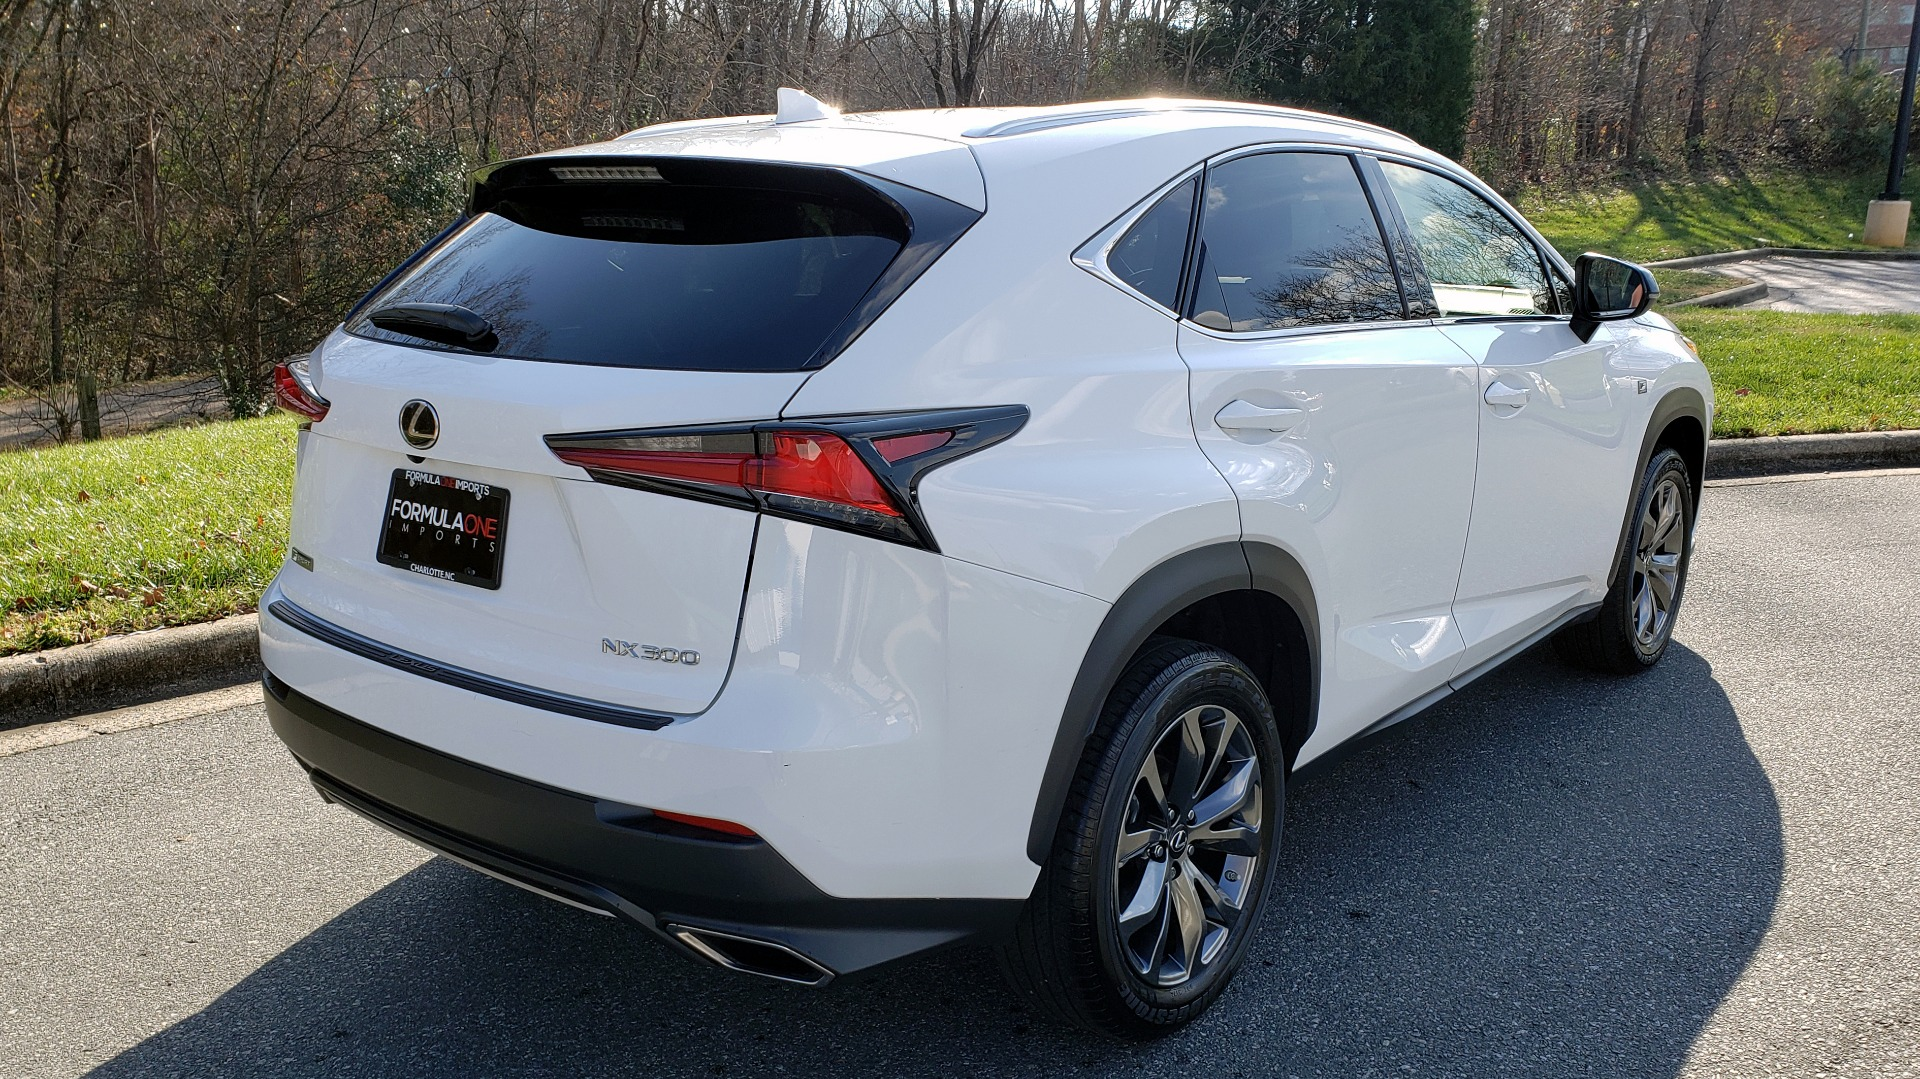 Used 2019 Lexus NX 300 F-SPORT / 2.0L TURBO / LEATHER / 18IN WHEELS / REARVIEW for sale $31,195 at Formula Imports in Charlotte NC 28227 6